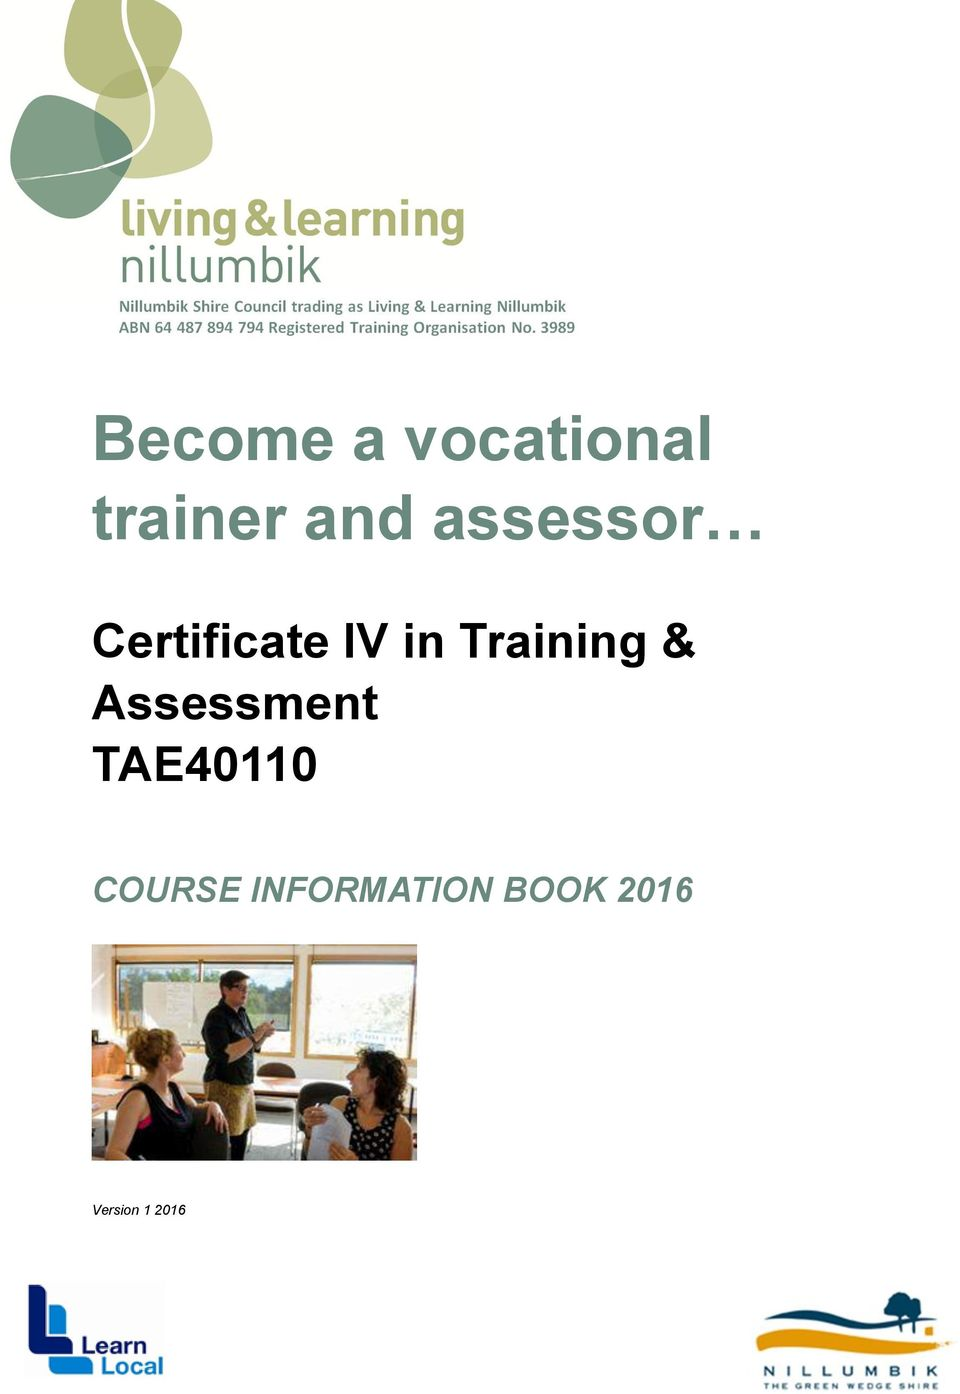 Training & Assessment TAE40110